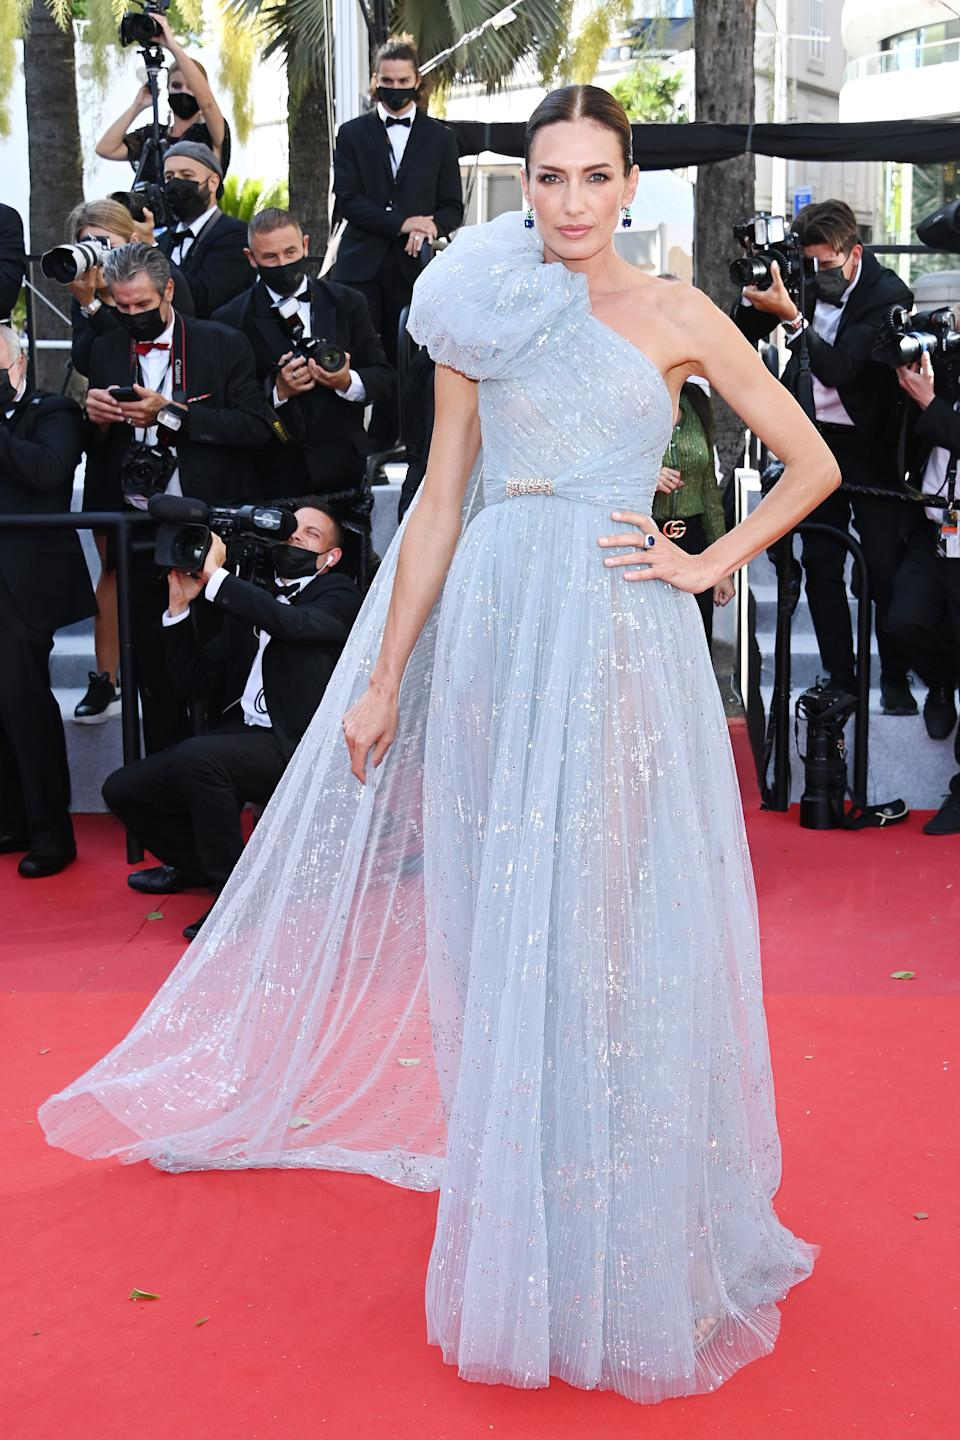 CANNES, FRANCE - JULY 13: Nieves Alvarez attends the